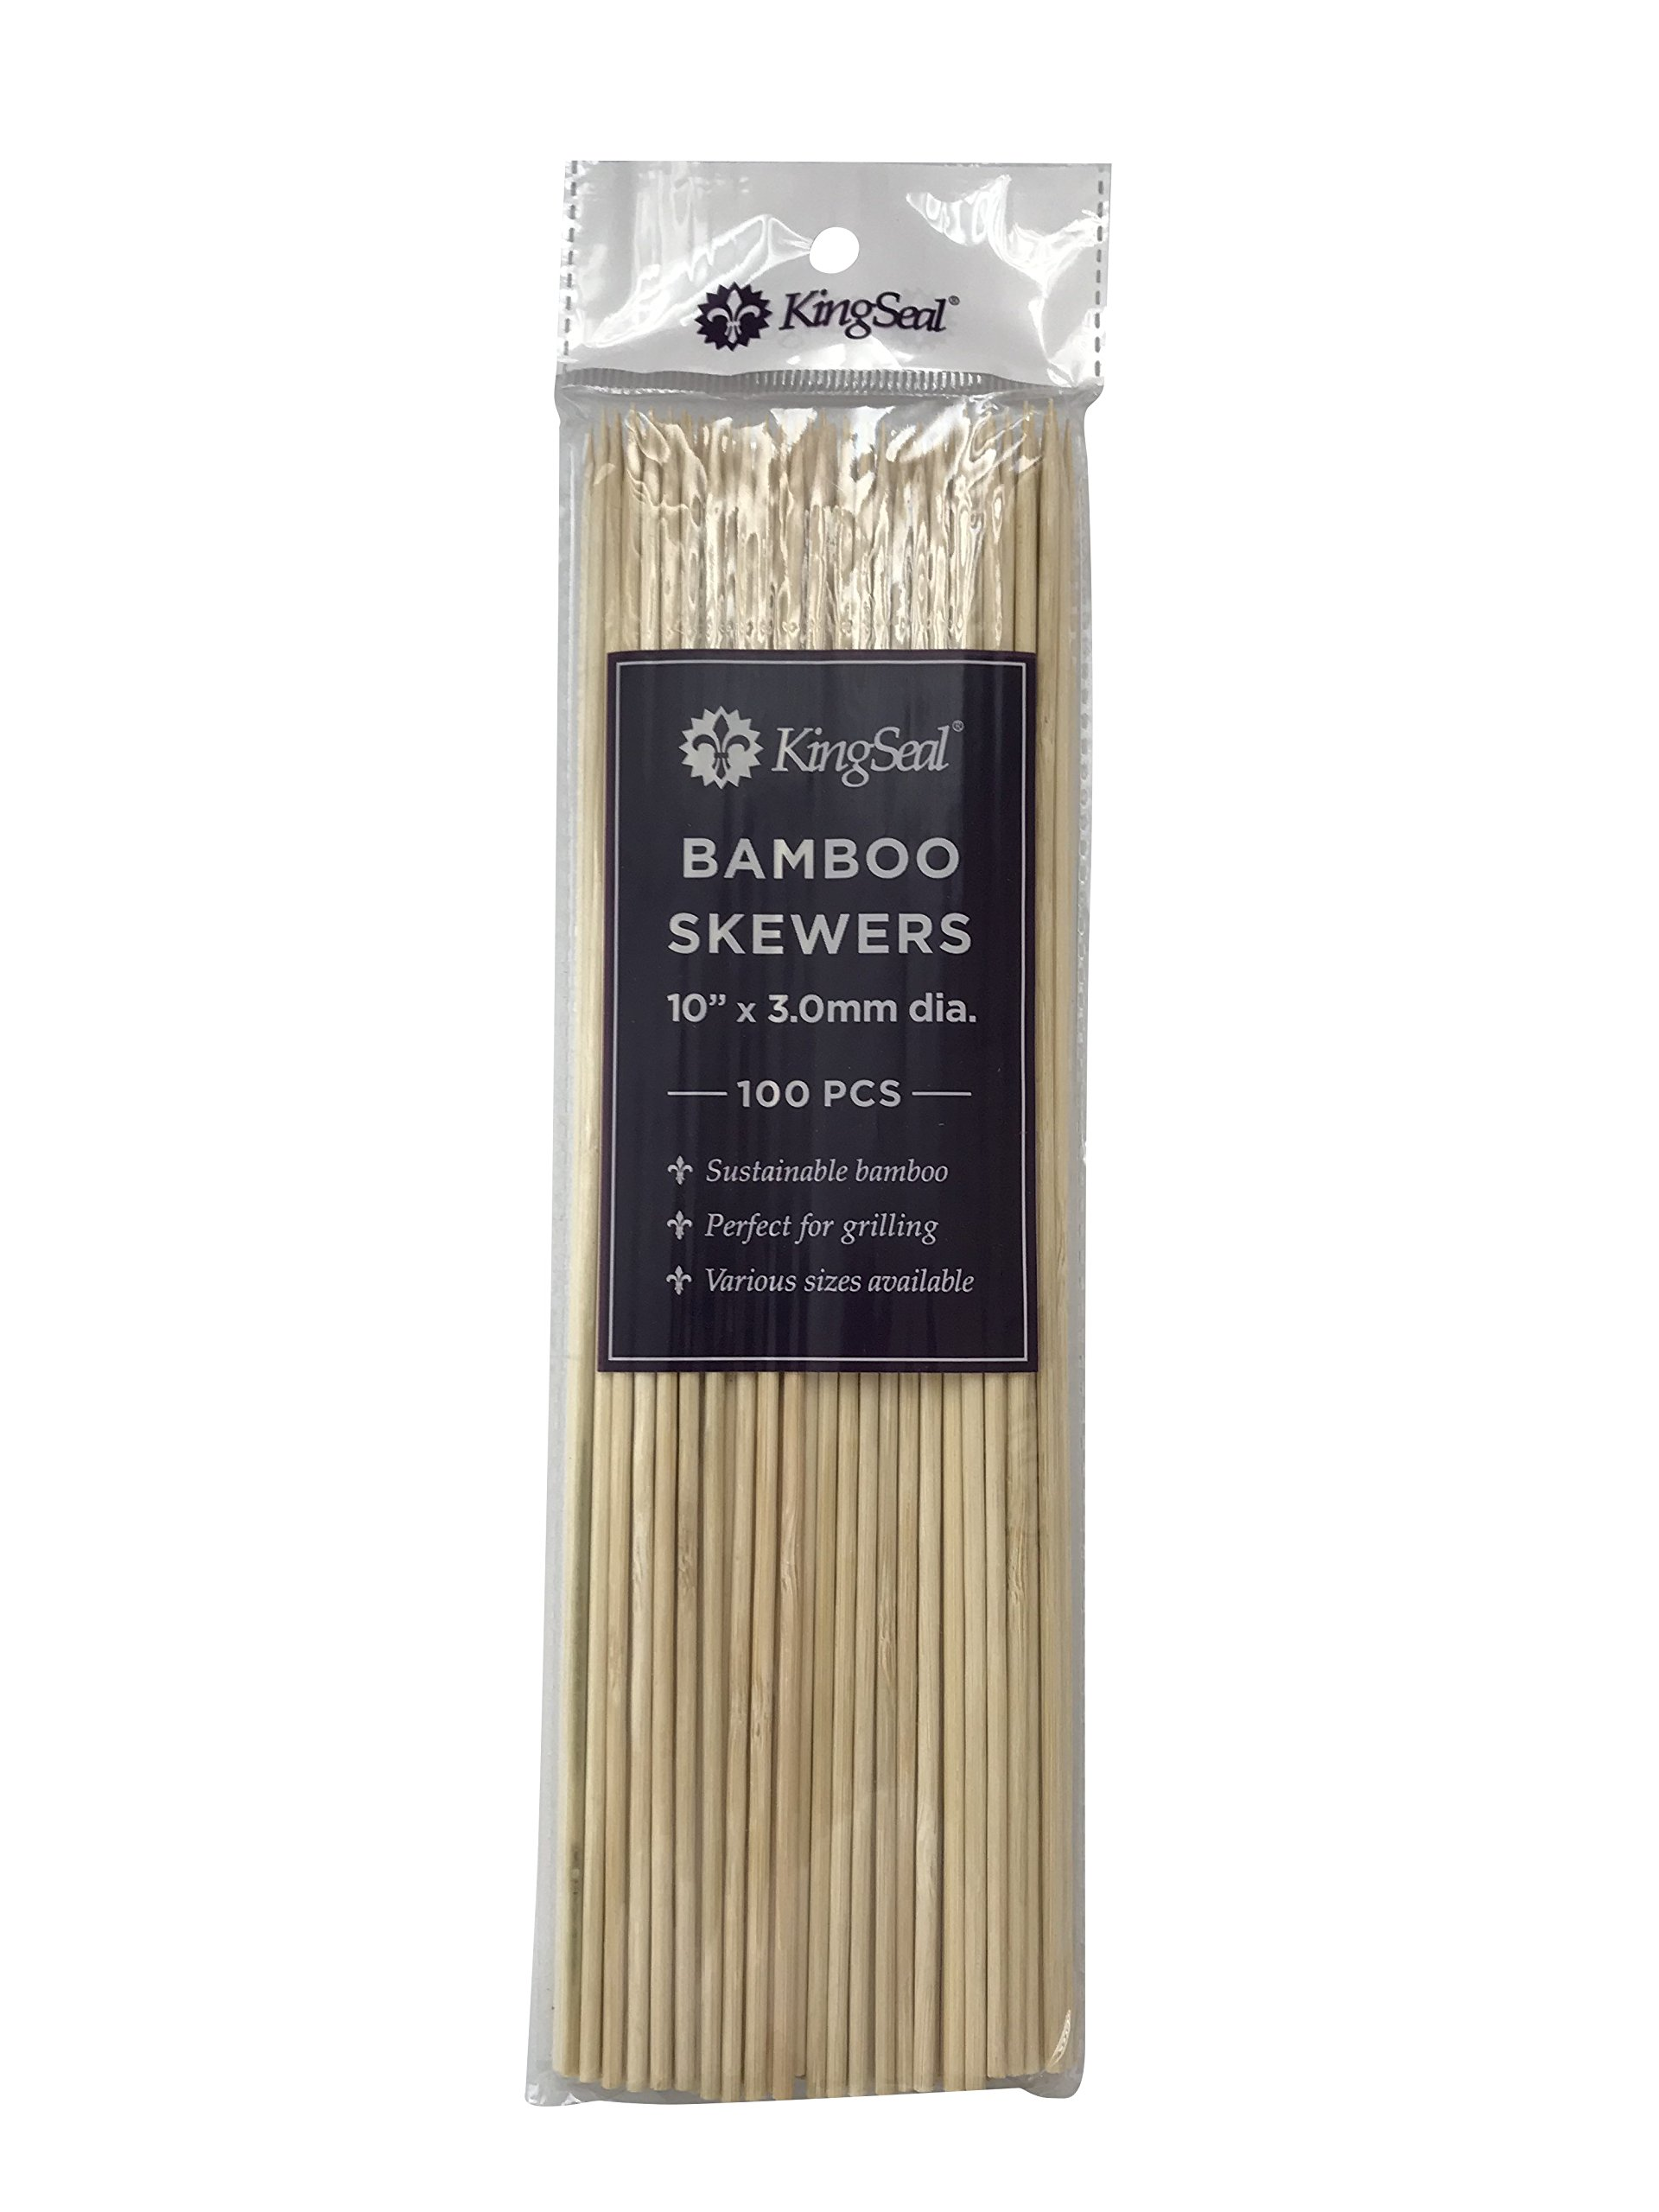 KingSeal Natural Bamboo Wood Skewers - 10 Inch Length, Master Case of 12/16/100 (19,200 pcs total)